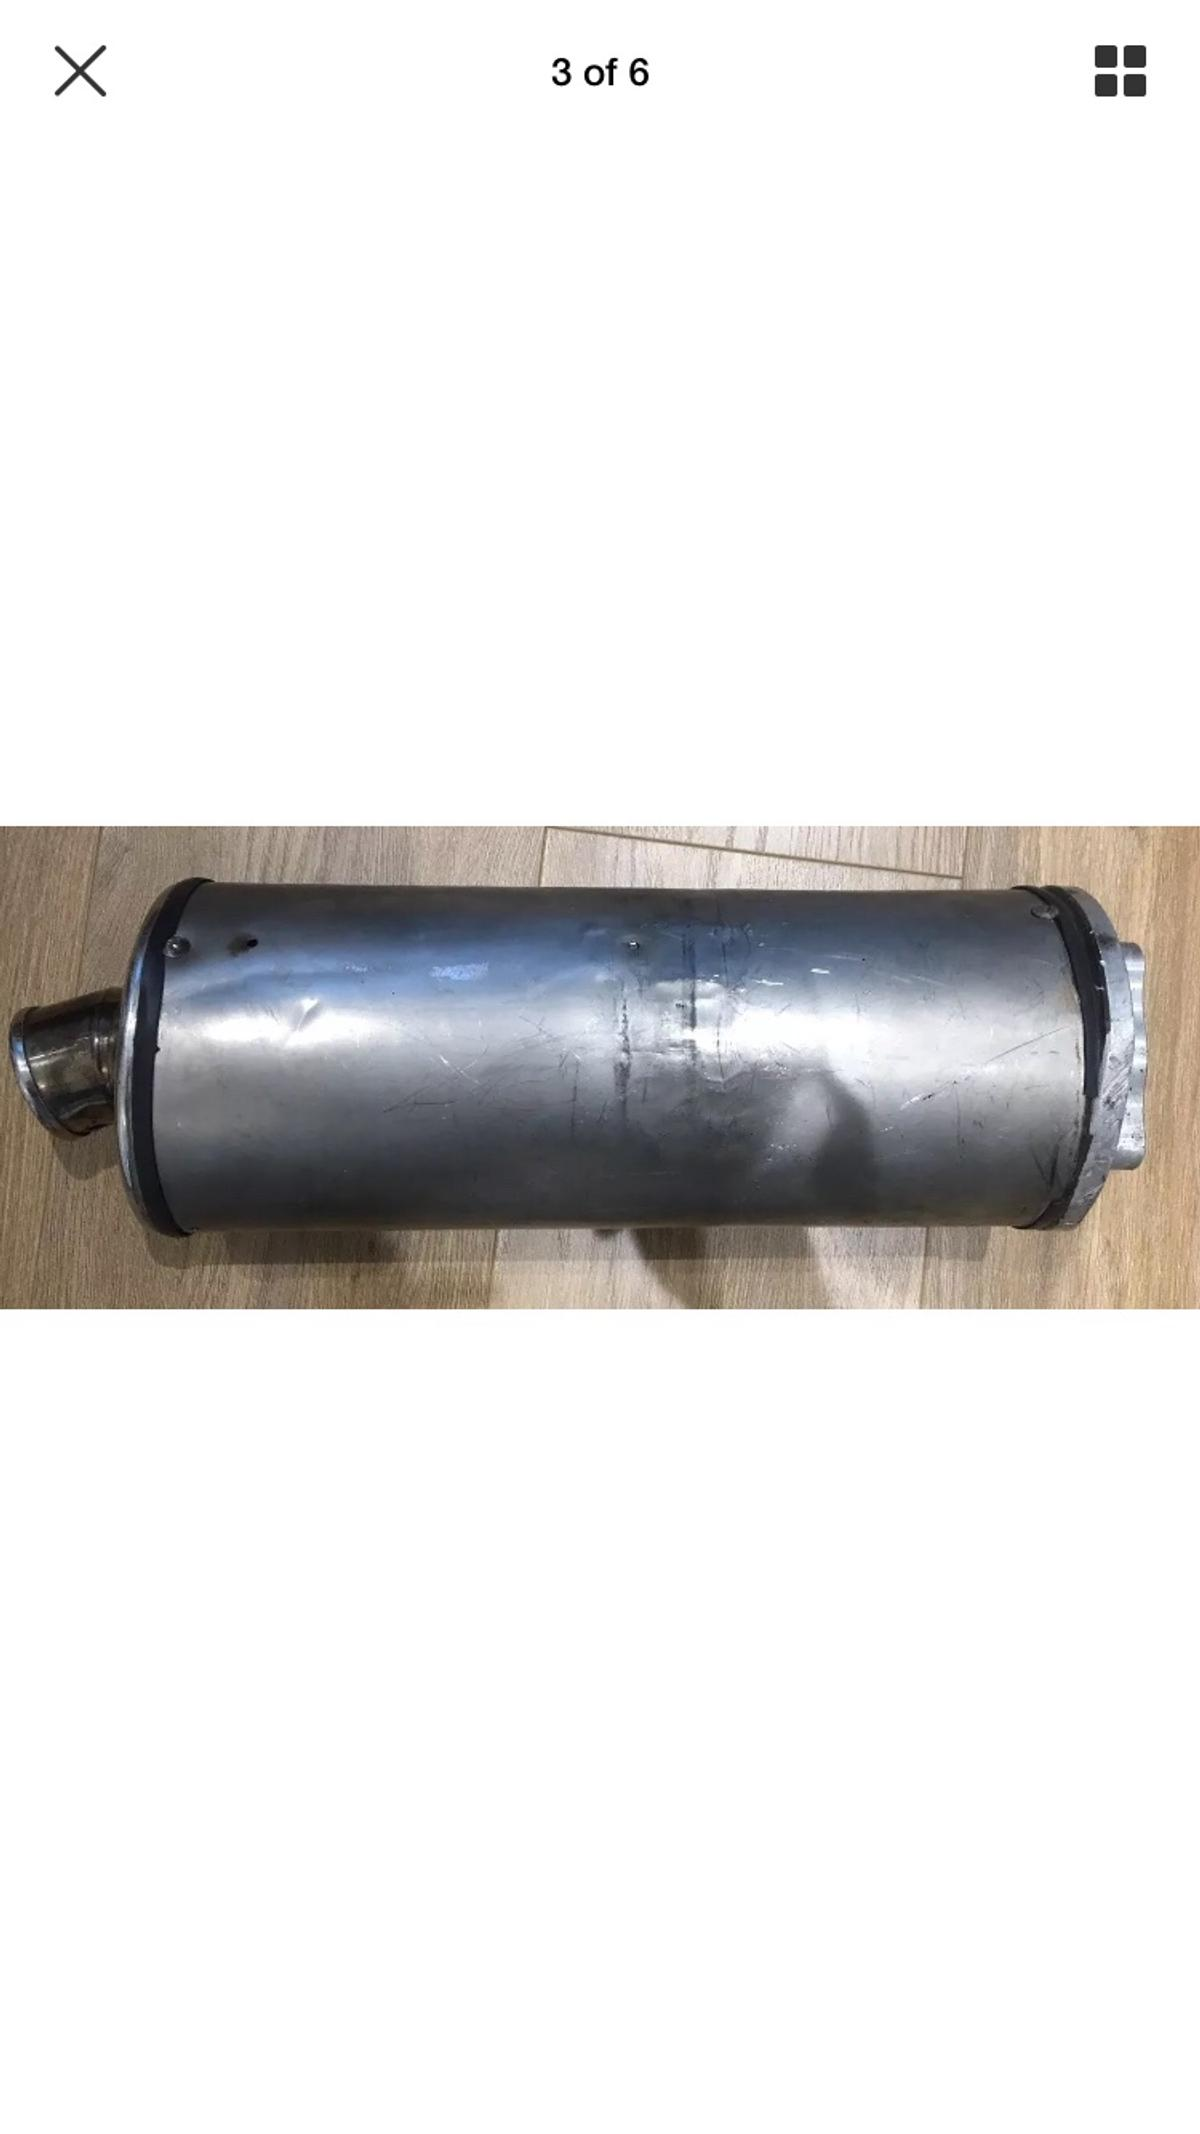 GSXR 1000 Micron Sports Exhaust 01-05 in TW14 London for